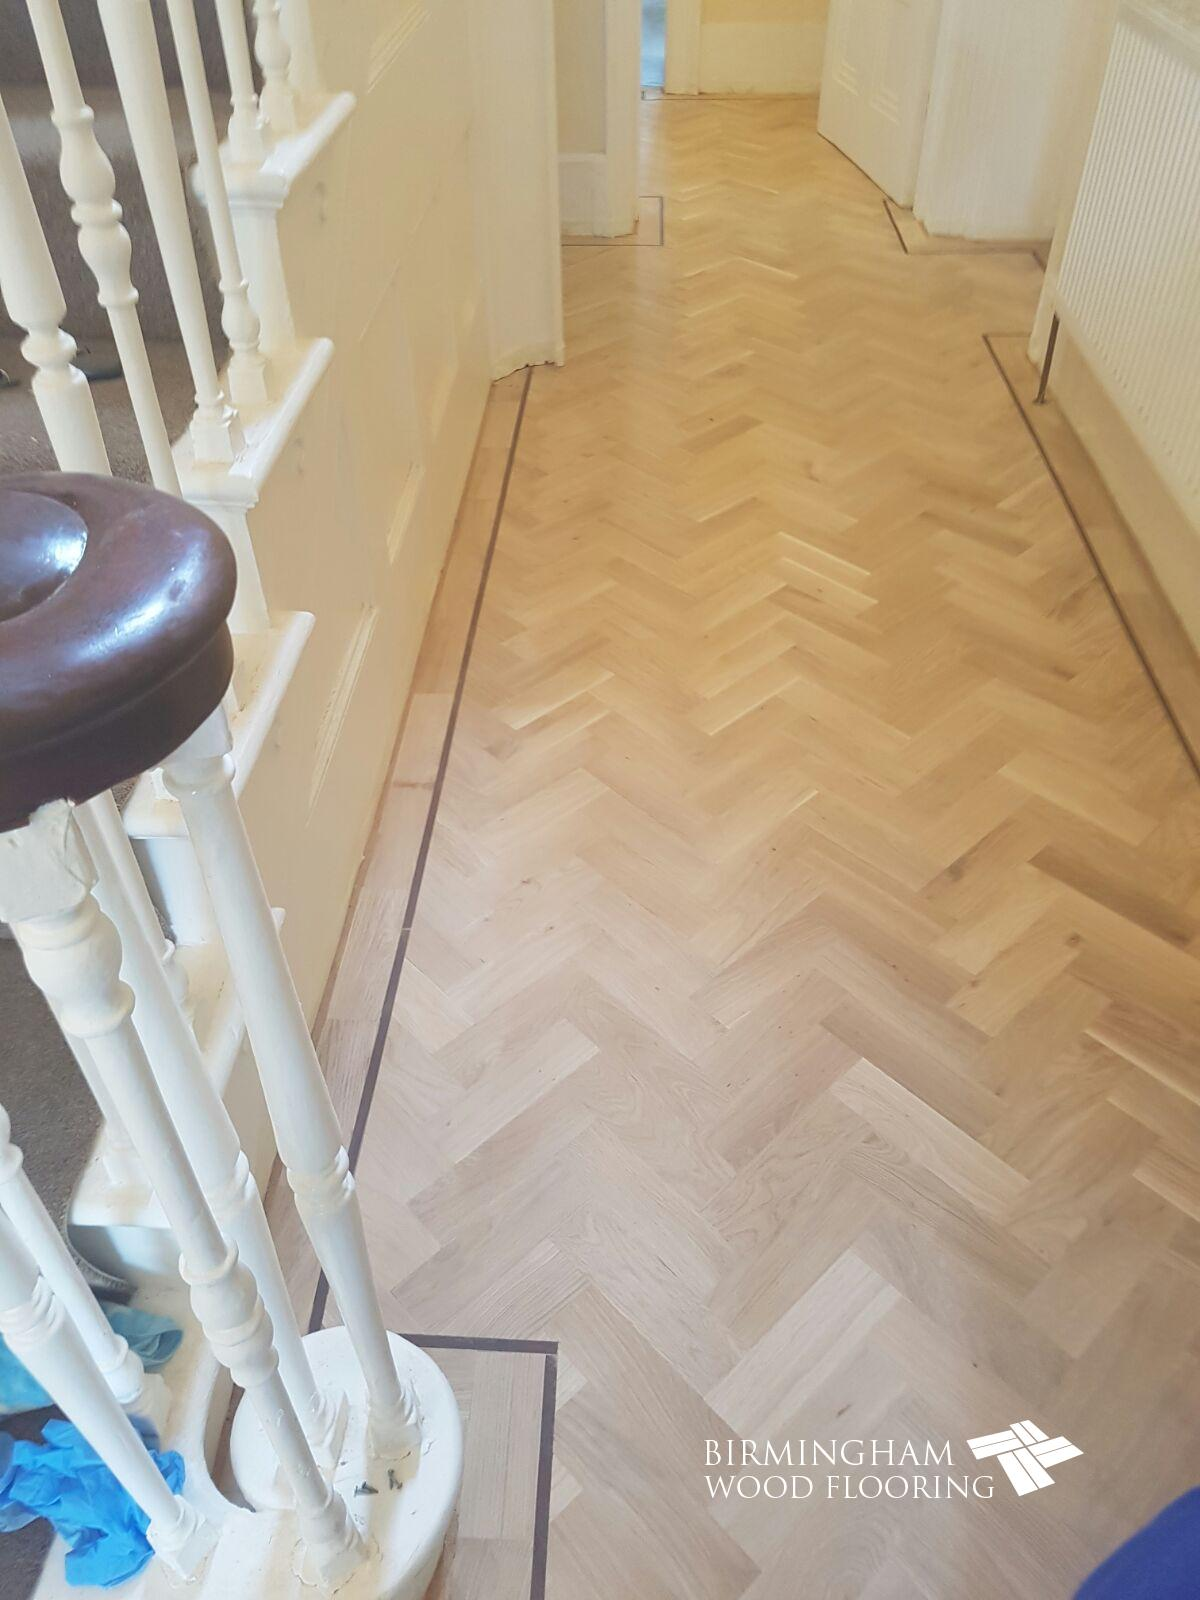 Parquet-floor-with-Wenge-Feature-strip-installed